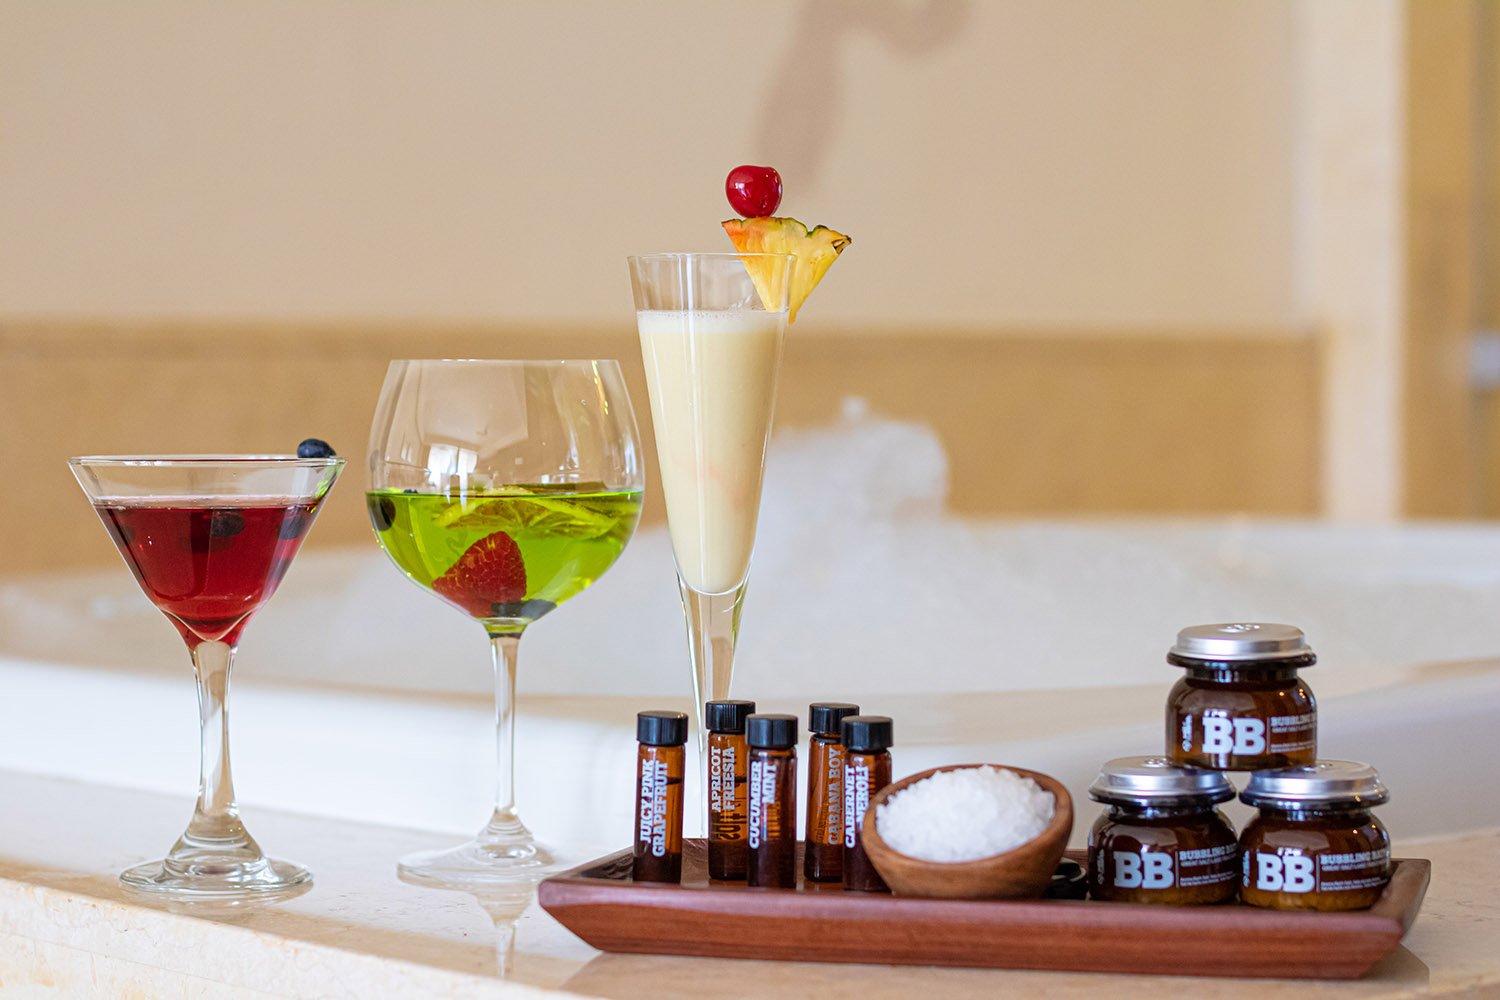 At Grand Velas Riviera Maya, guests can now indulge in an in-suite bubble bath menu inspired by their favorite cocktail.